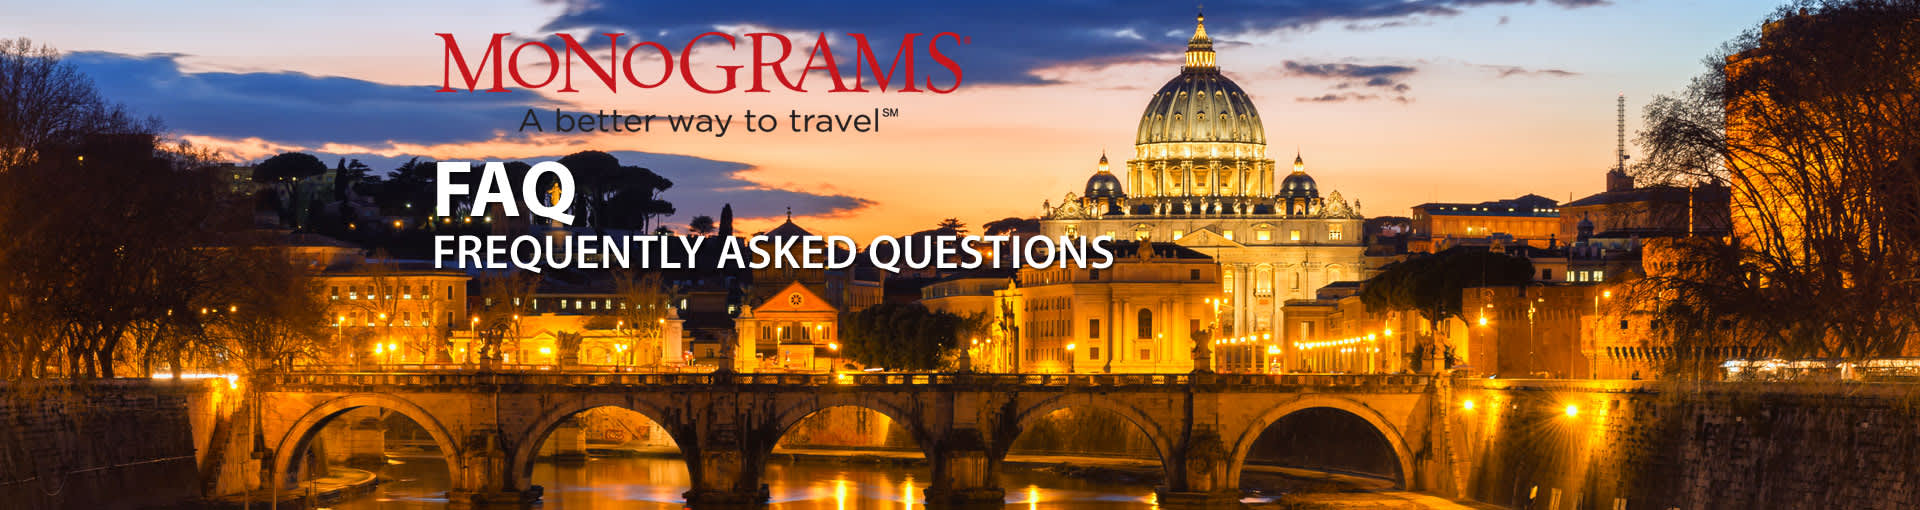 Monograms Vacation Packages FAQ